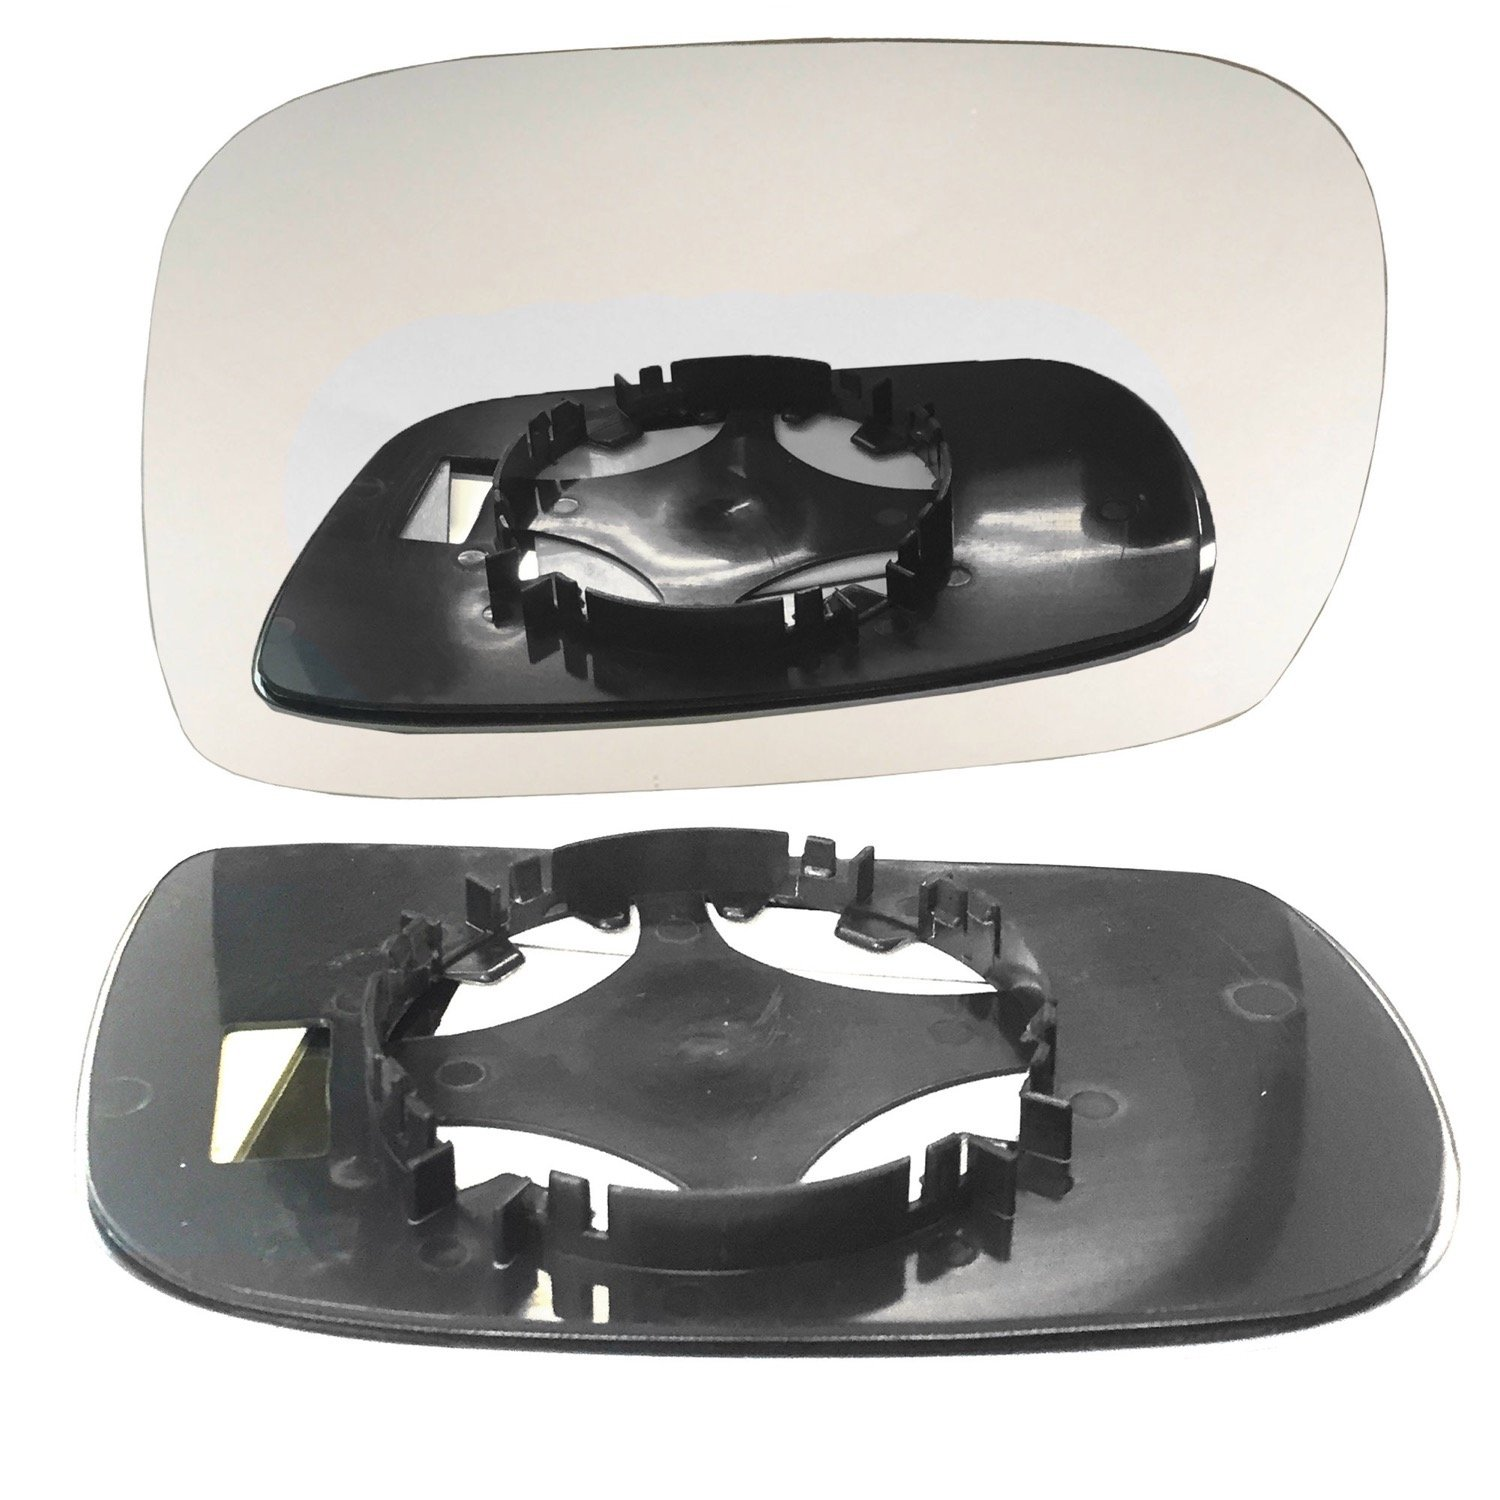 Right hand, driver side wing door clip mirror glass # VaAgi/F01-2007673/590 Less4Spares